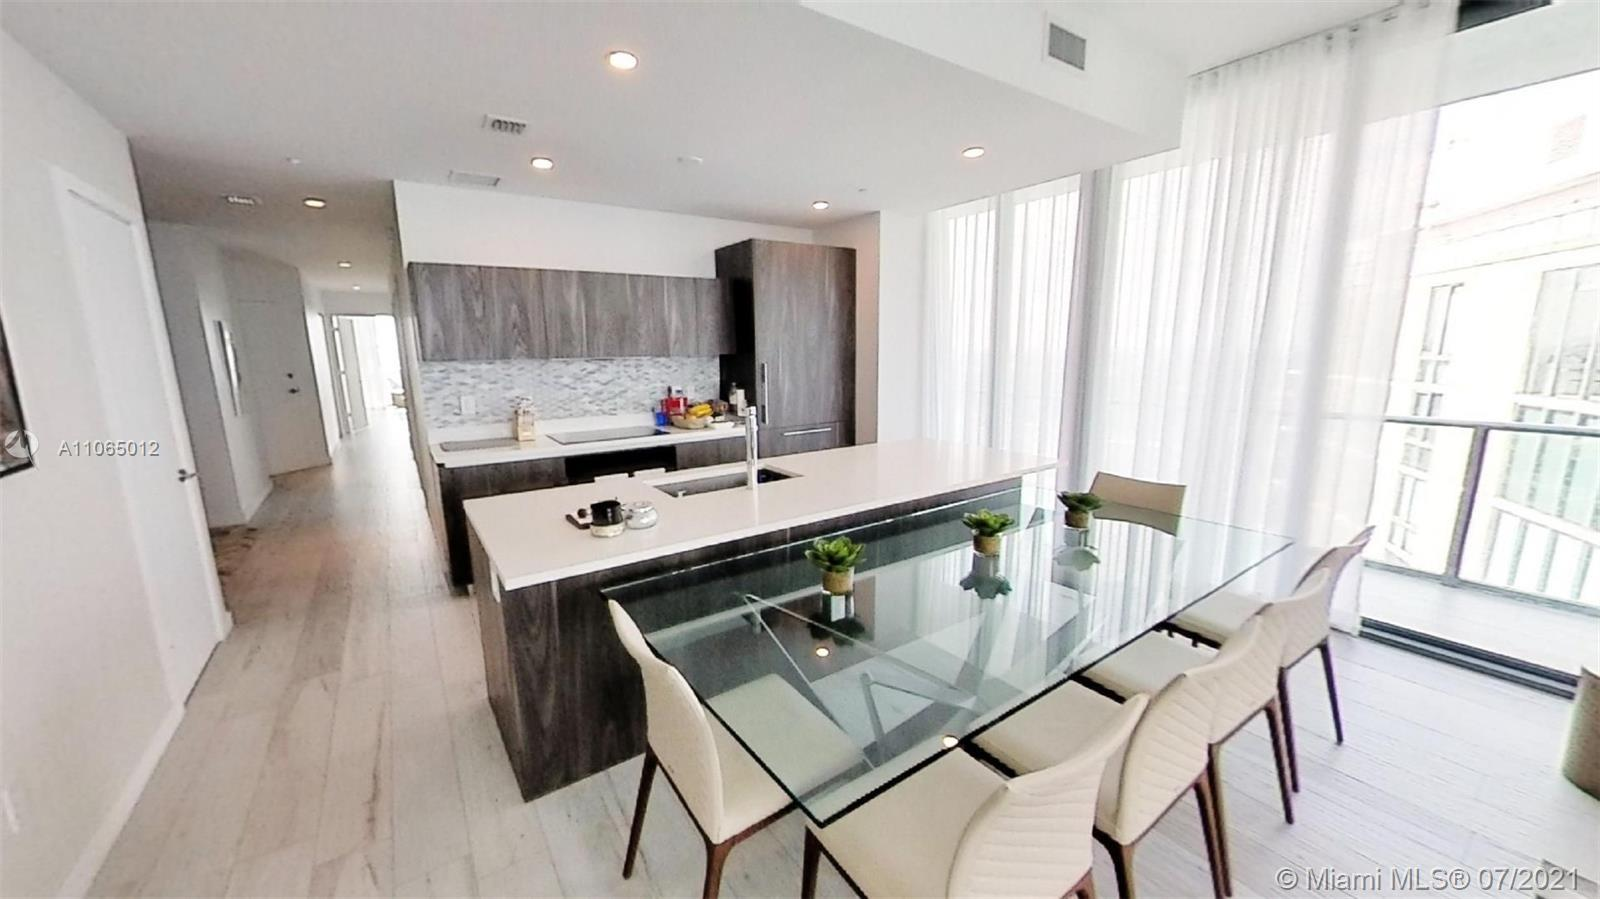 Amazing lower Penthouse corner unit with 3 bedrooms , 3 baths and 2 parking spaces with the best vie